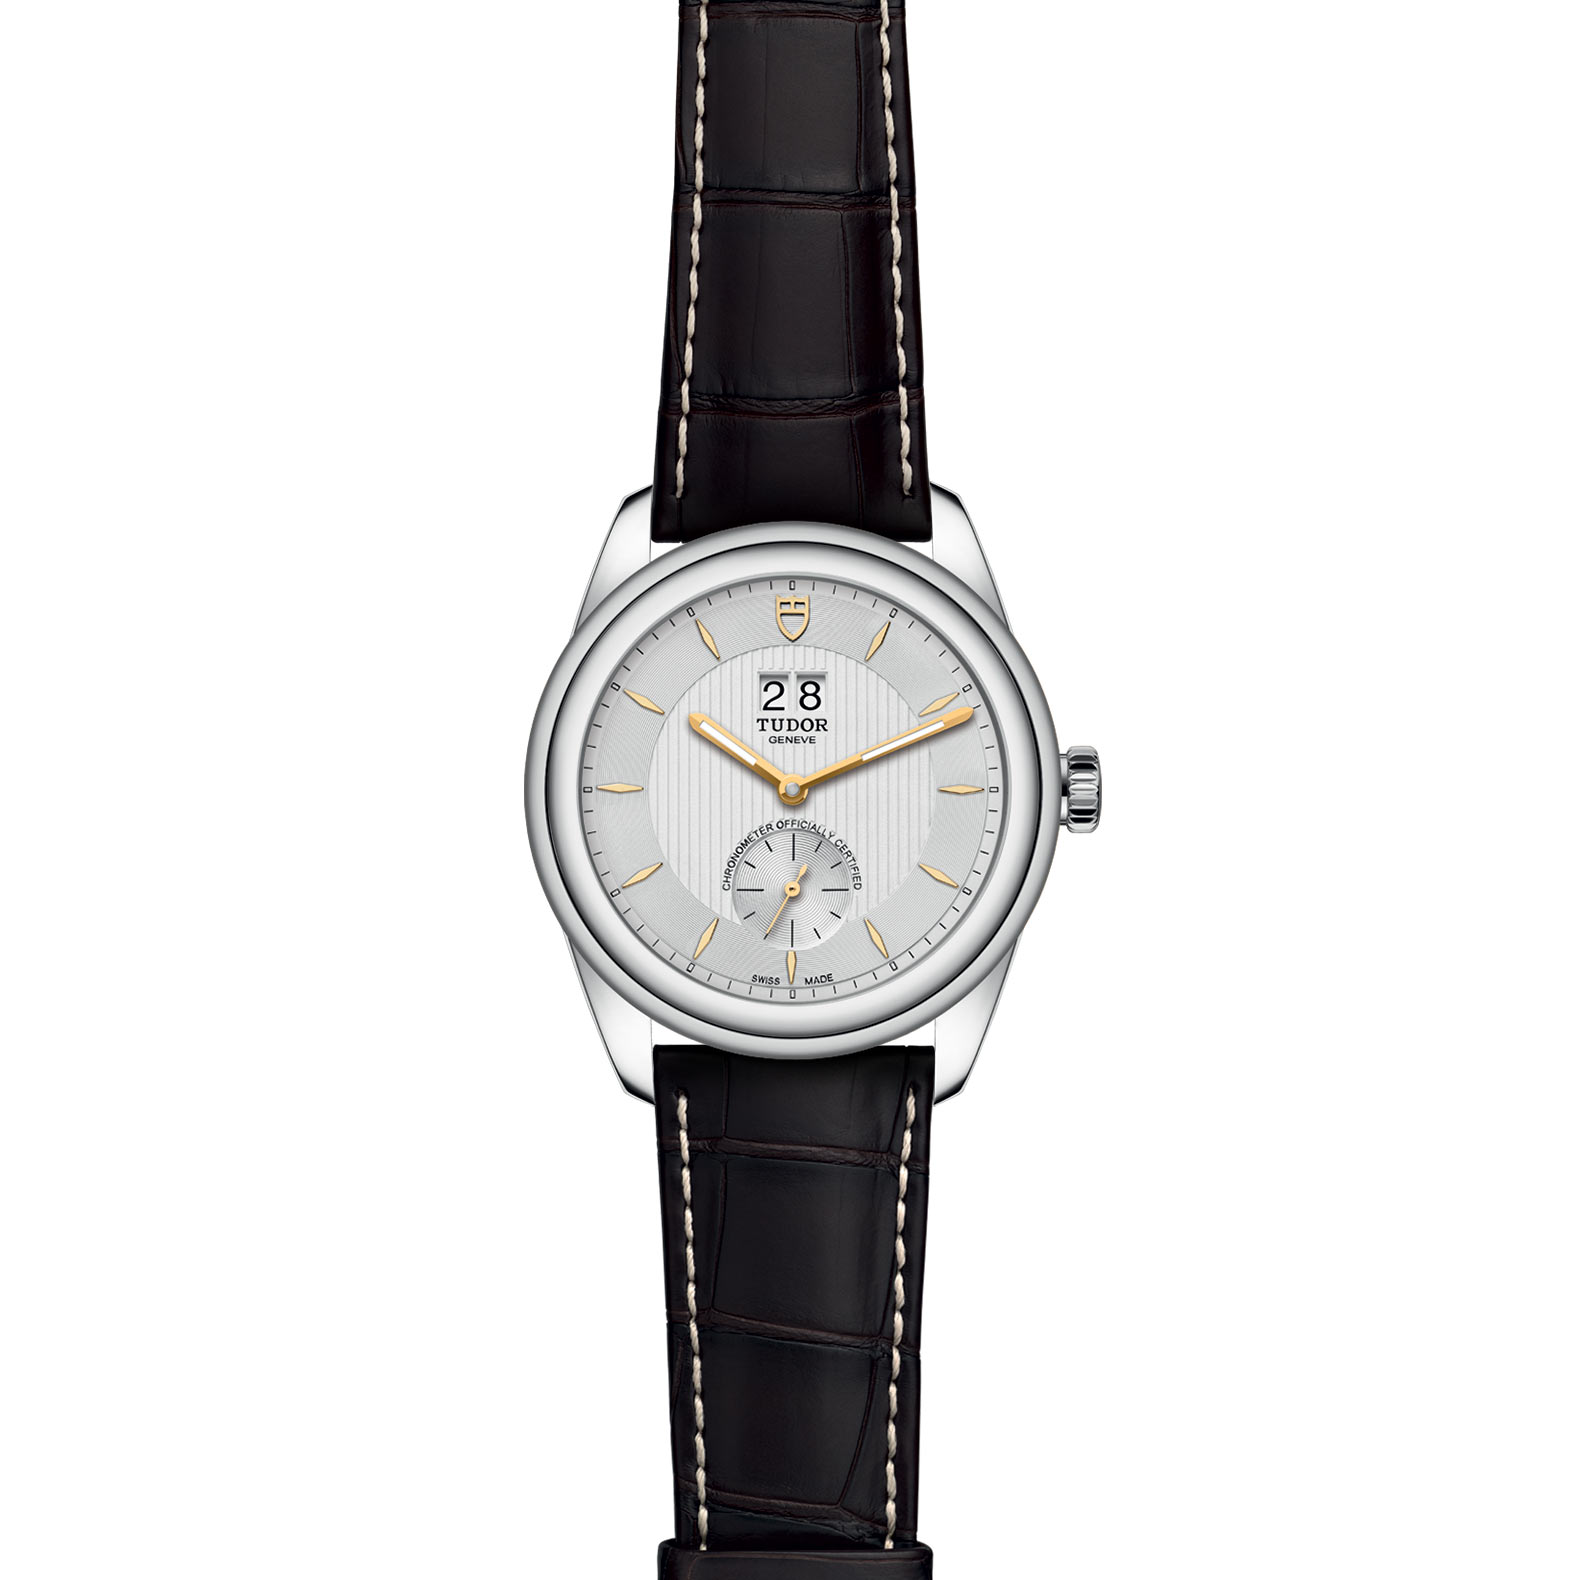 TUDOR Glamour Double Date M57100 0017 Frontfacing